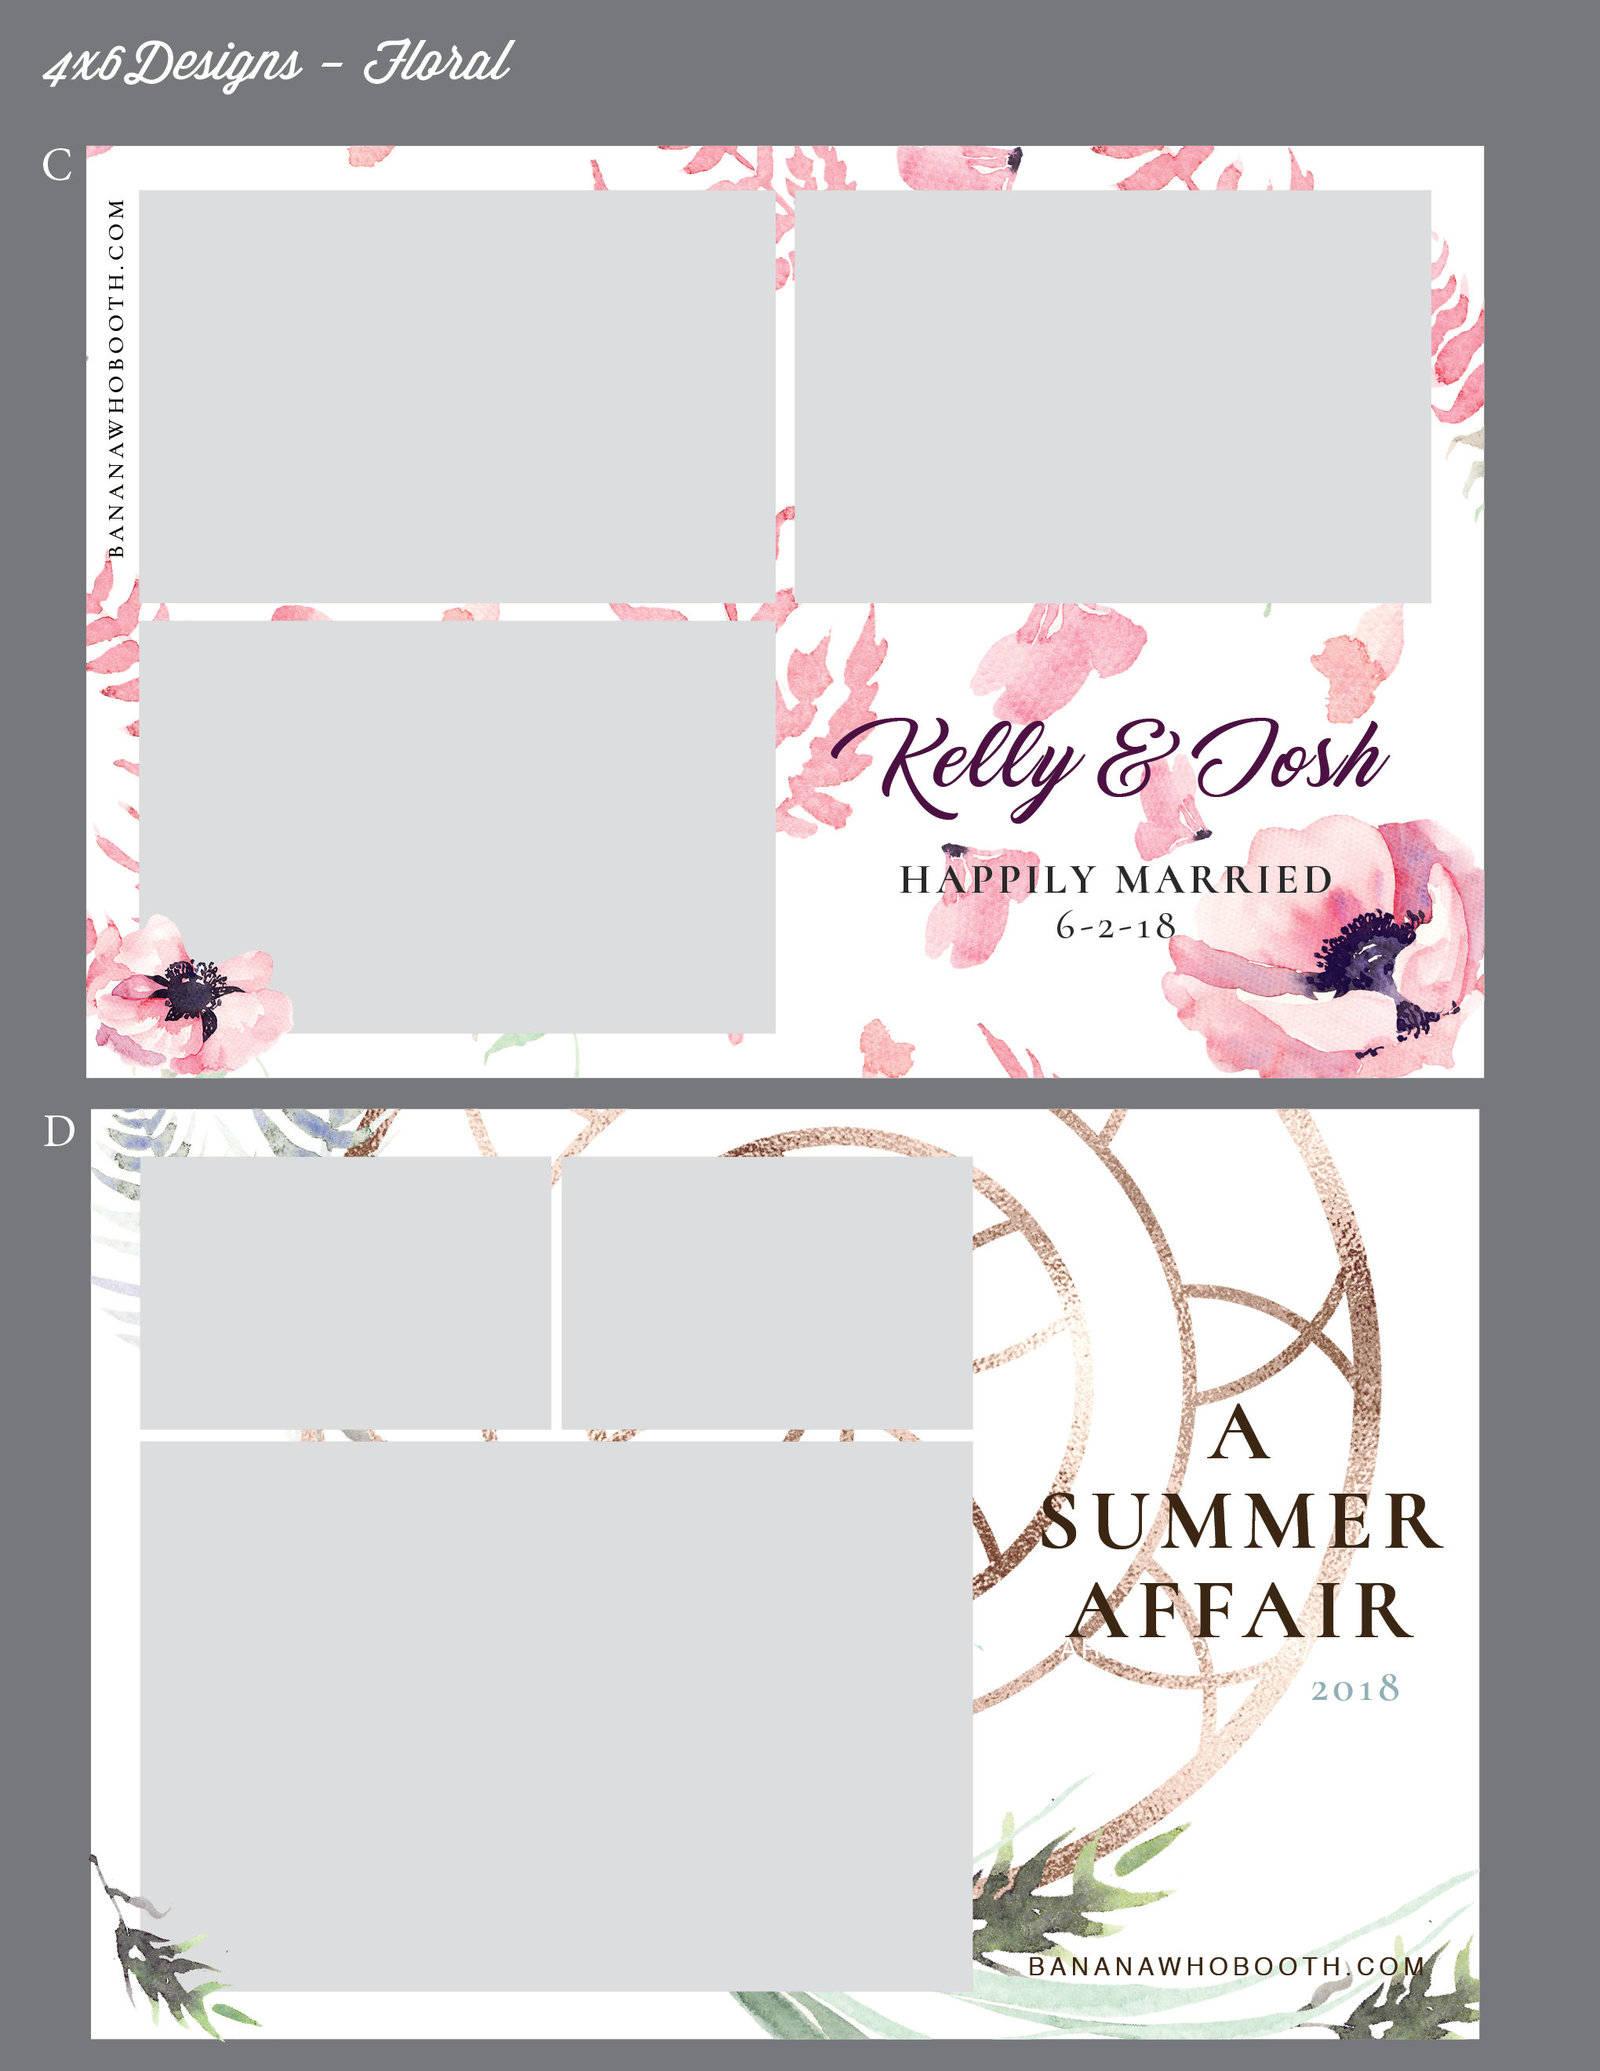 Templates-Floral4